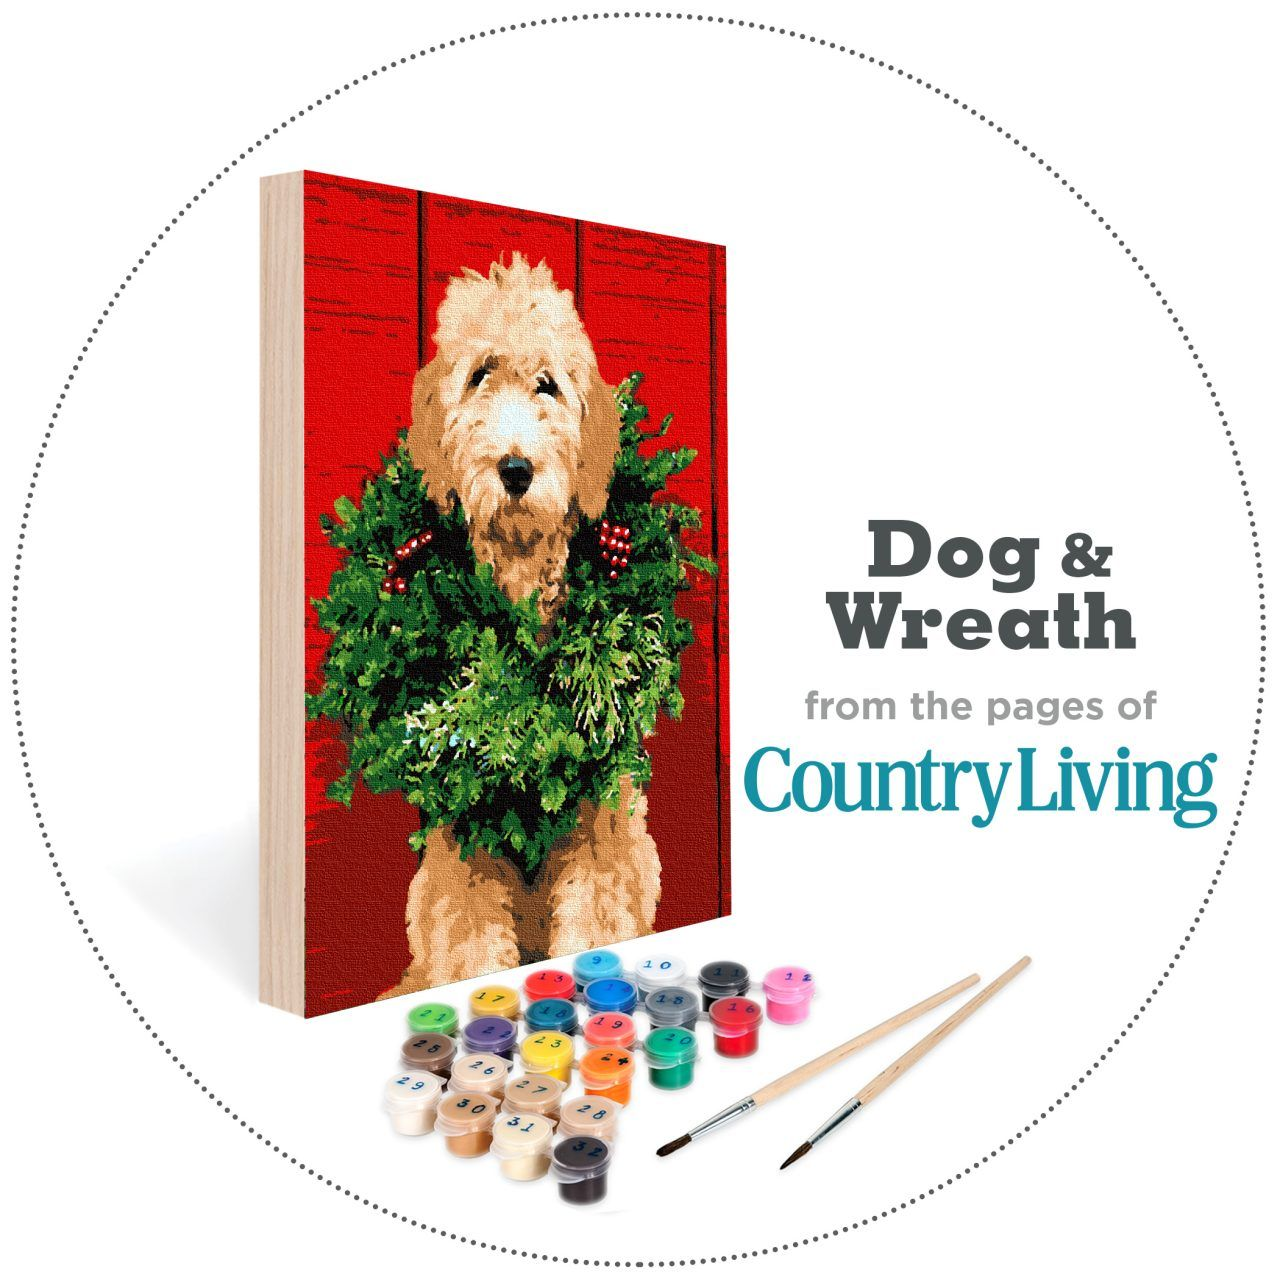 50 Best Gifts For Dog Lovers 2019